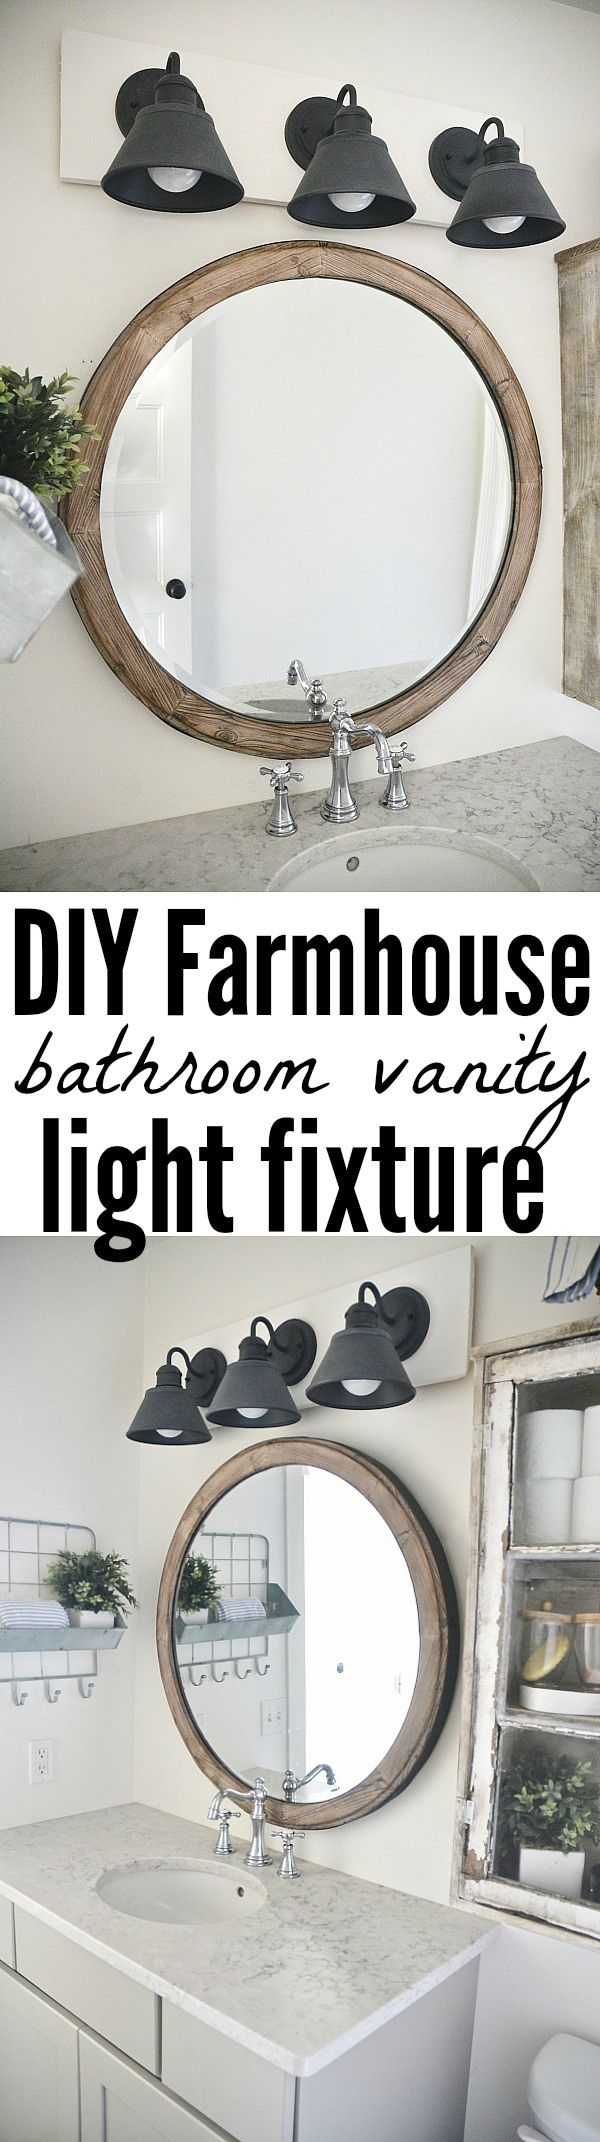 Bathroom Vanity Lights Austin Tx best 20+ bathroom lighting inspiration ideas on pinterest | vanity